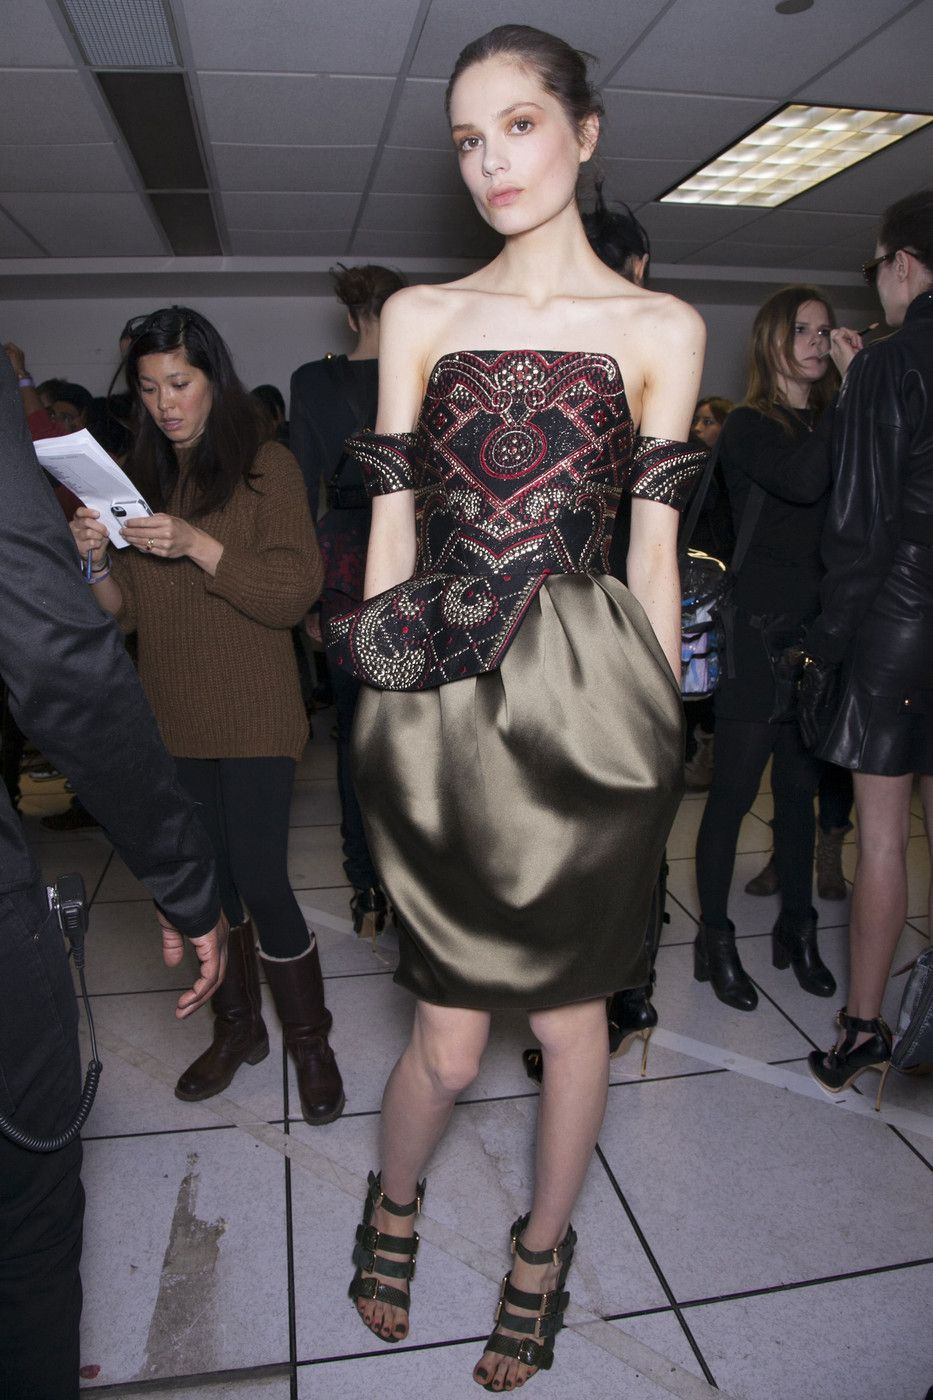 Prabal_Gurung_Fall_2013_Backstage_3t0_SJkb3tdrx